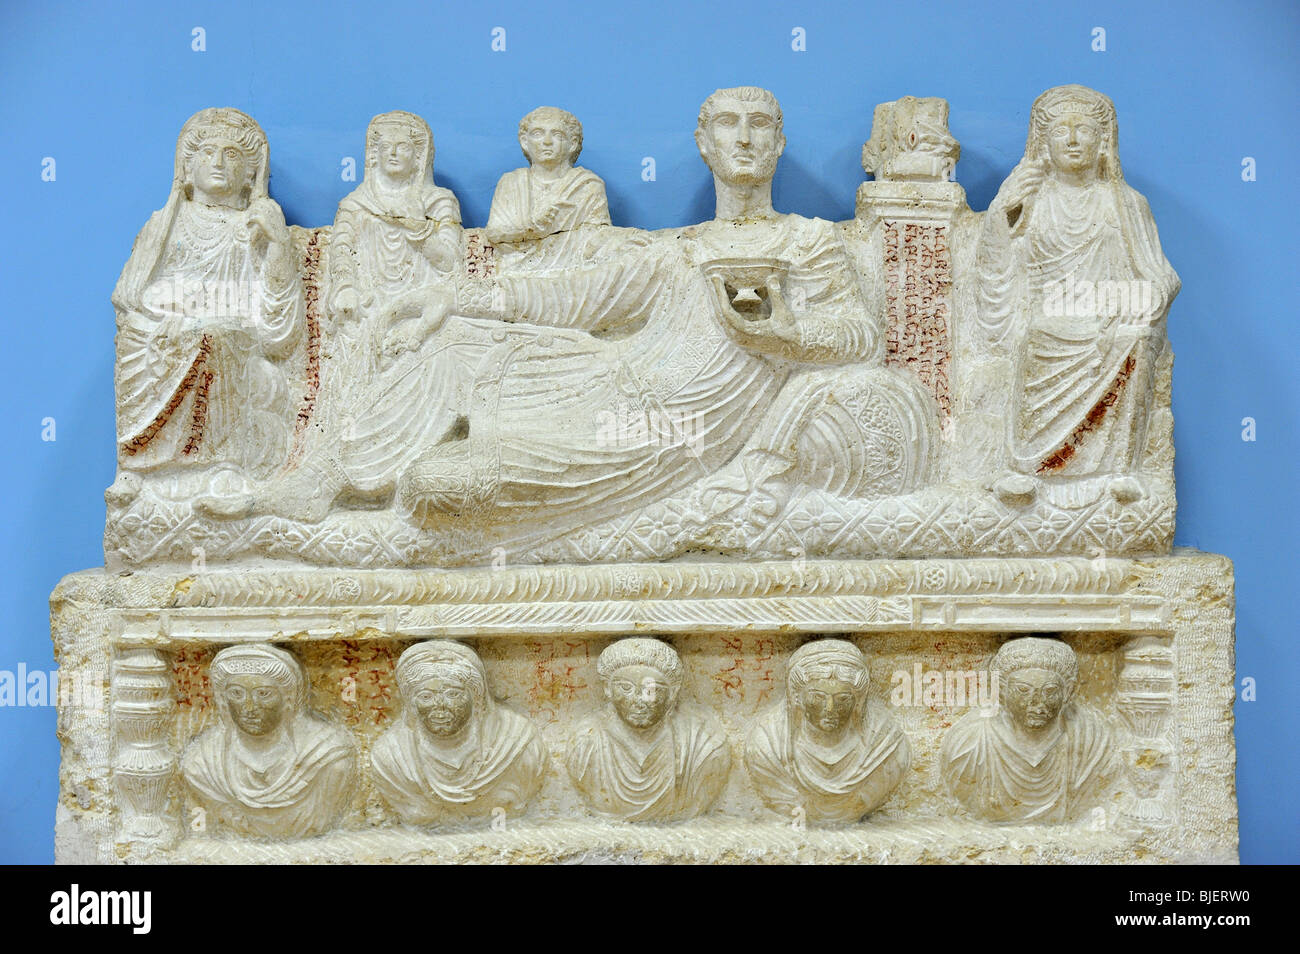 Family, funerary relief, 3rd century, from Valley of Tombs, Palmyra, Syria - Stock Image